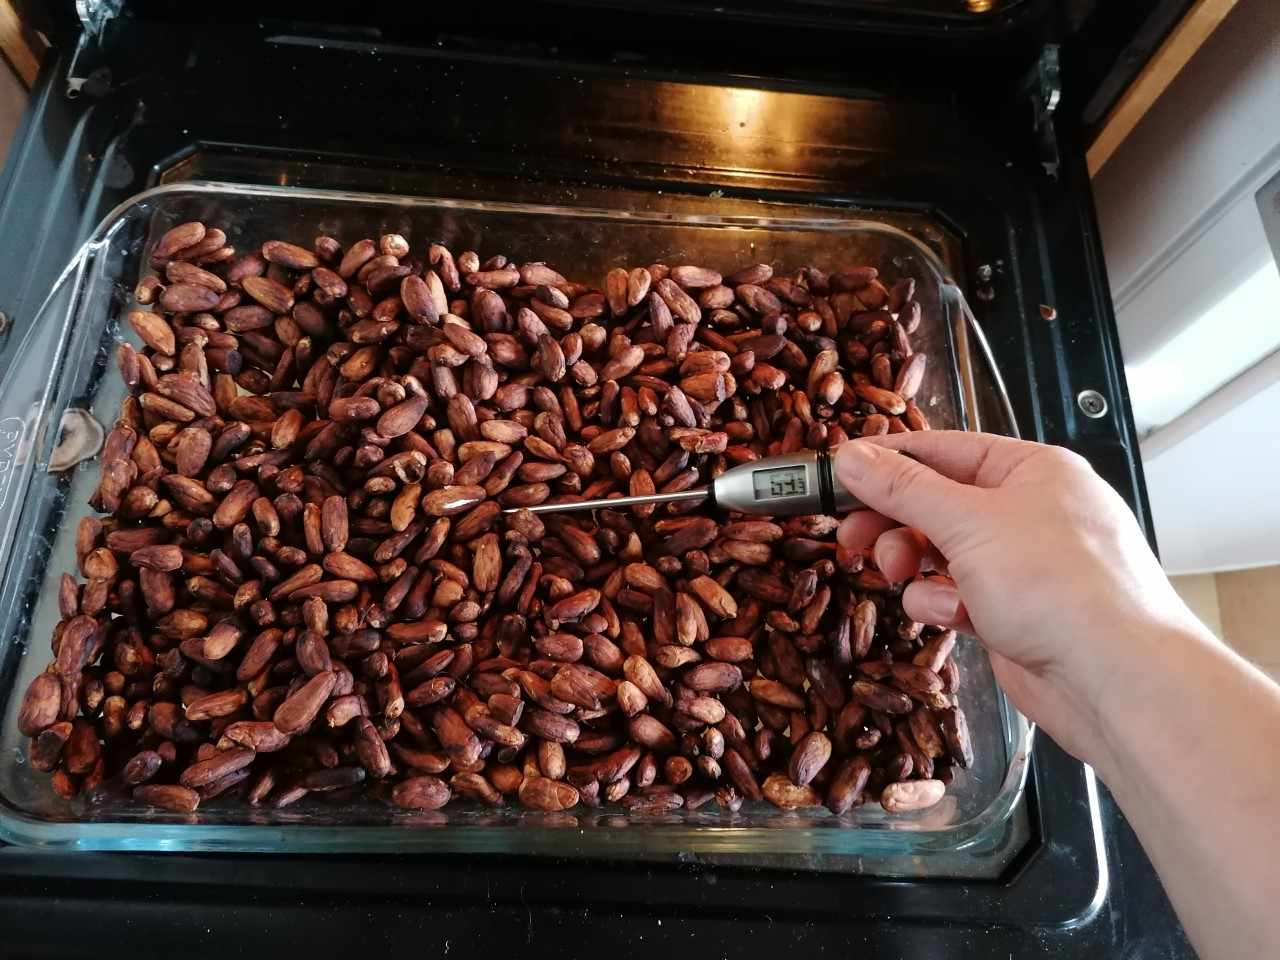 Drying cacao beans in the oven